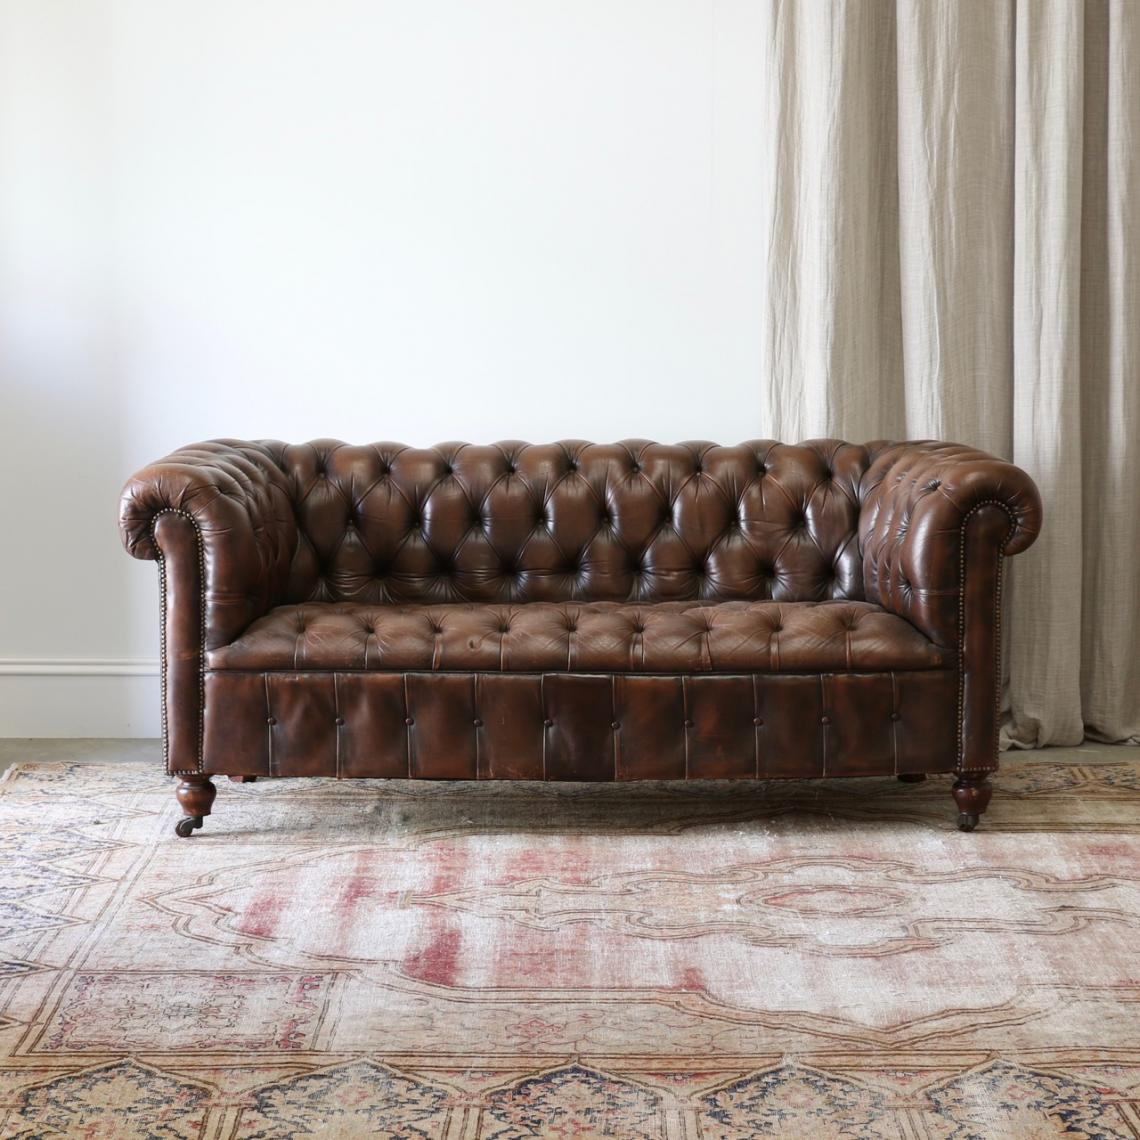 113-18 - Old Leather Chesterfield